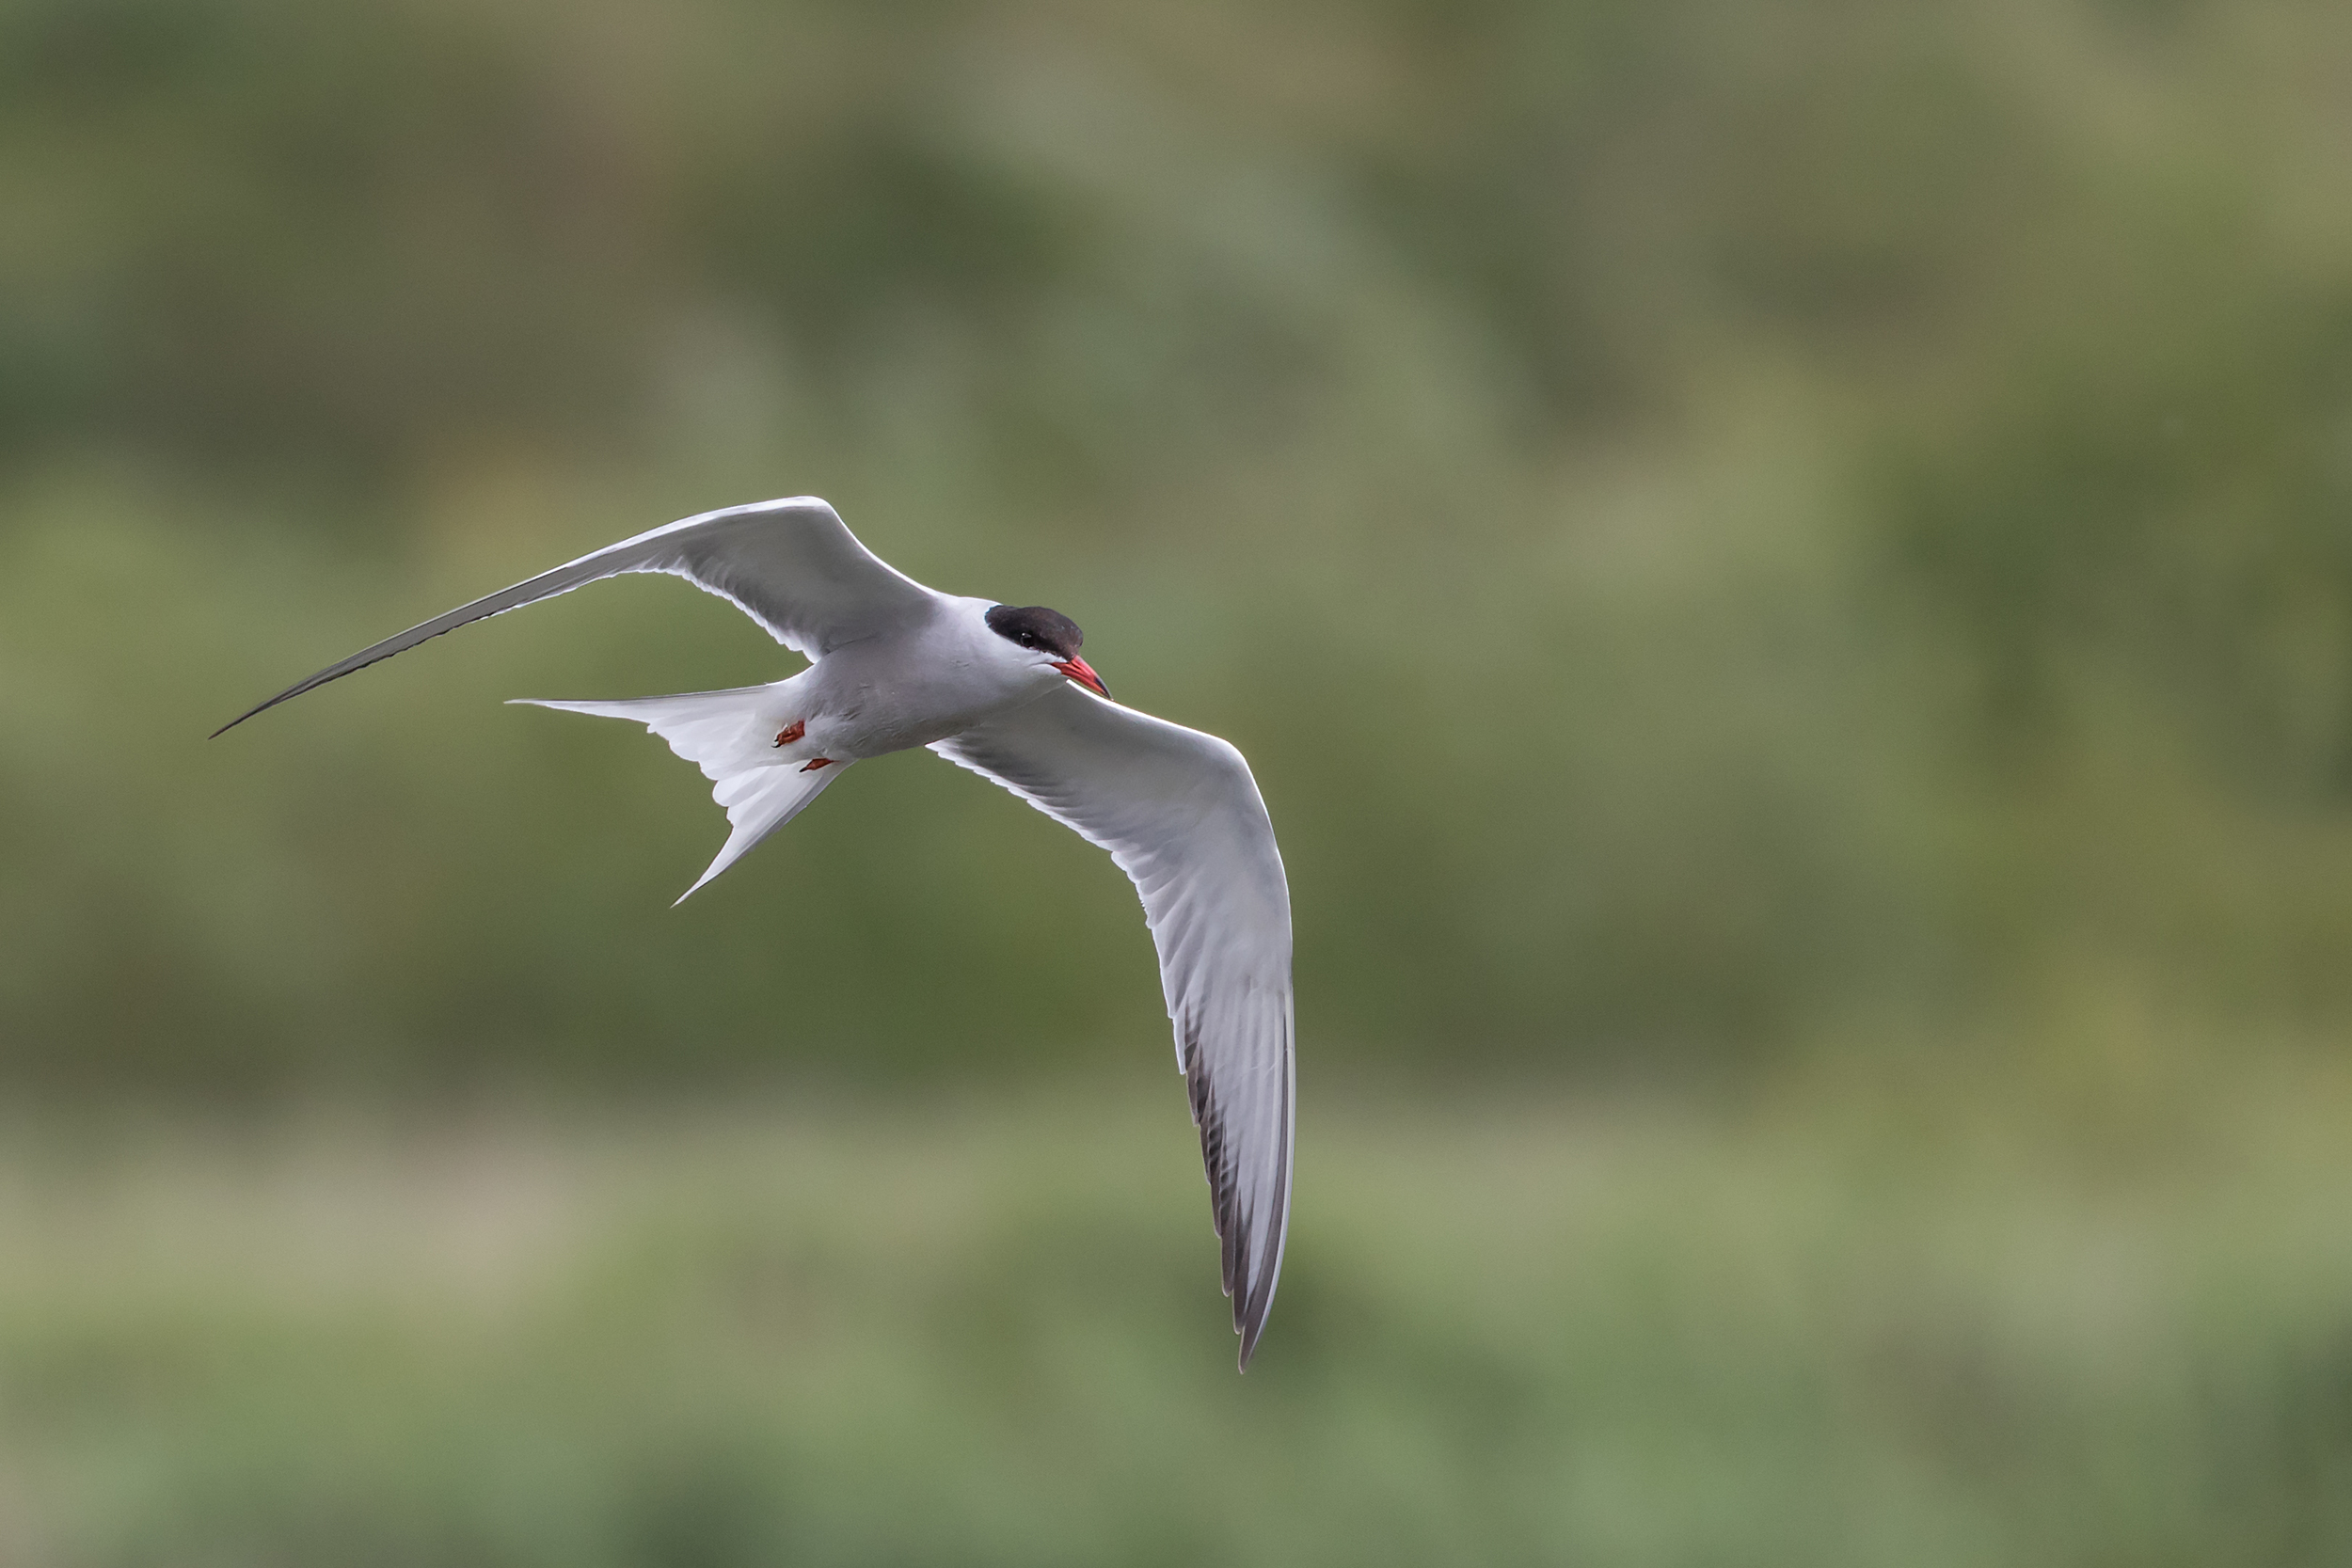 An oncoming Common Tern